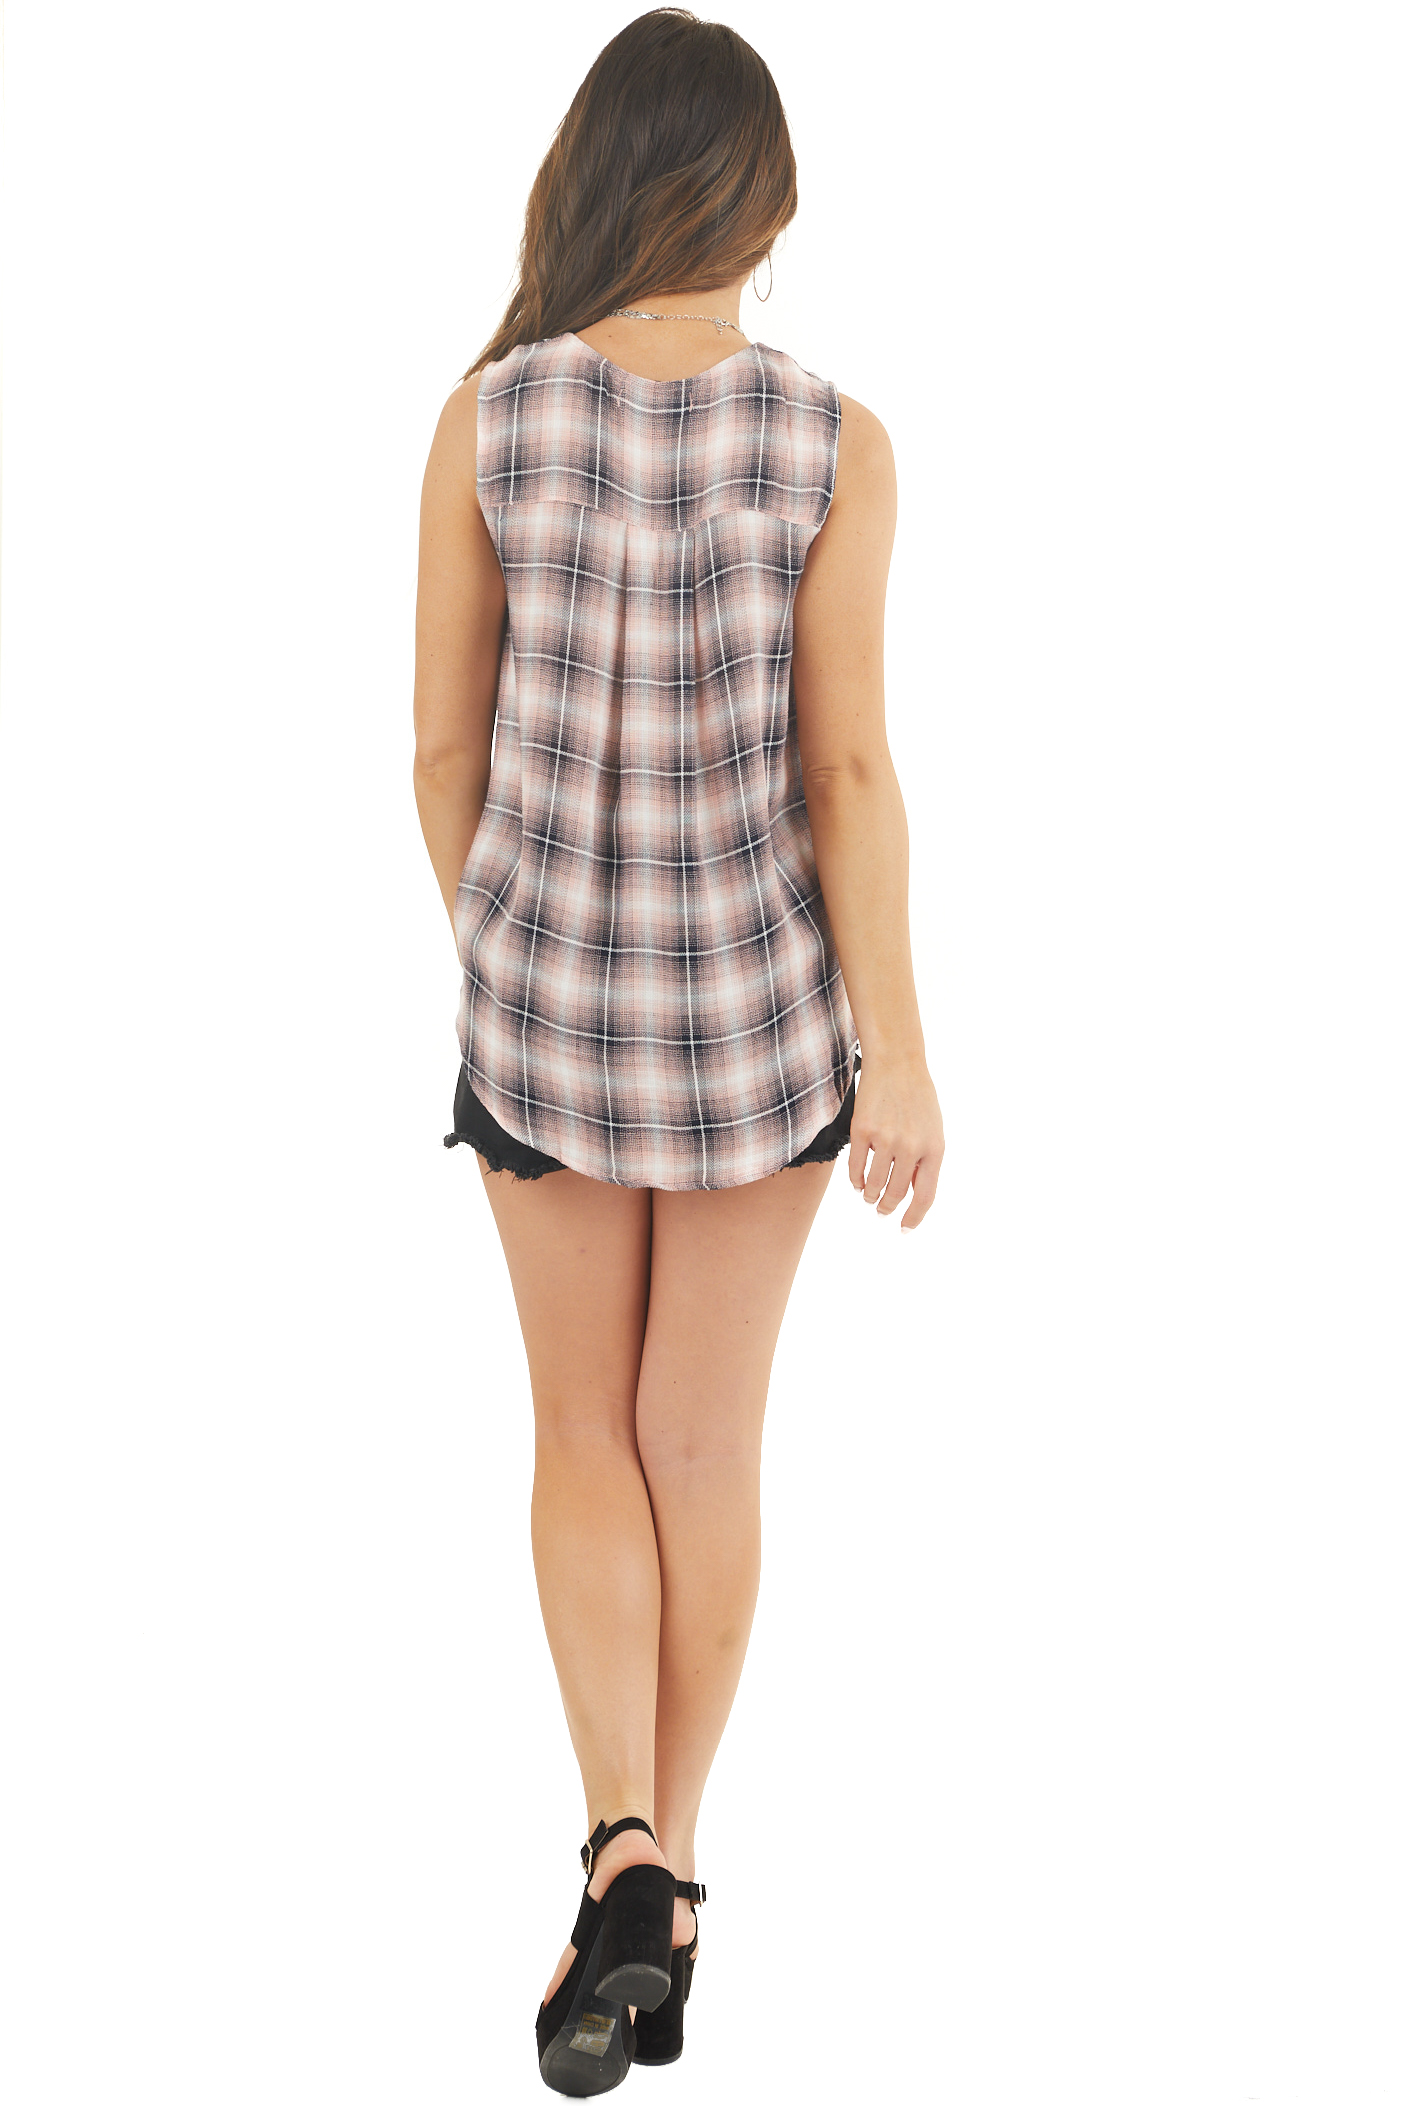 Blush Pink and Midnight Plaid Surplice V Neck Tank Top